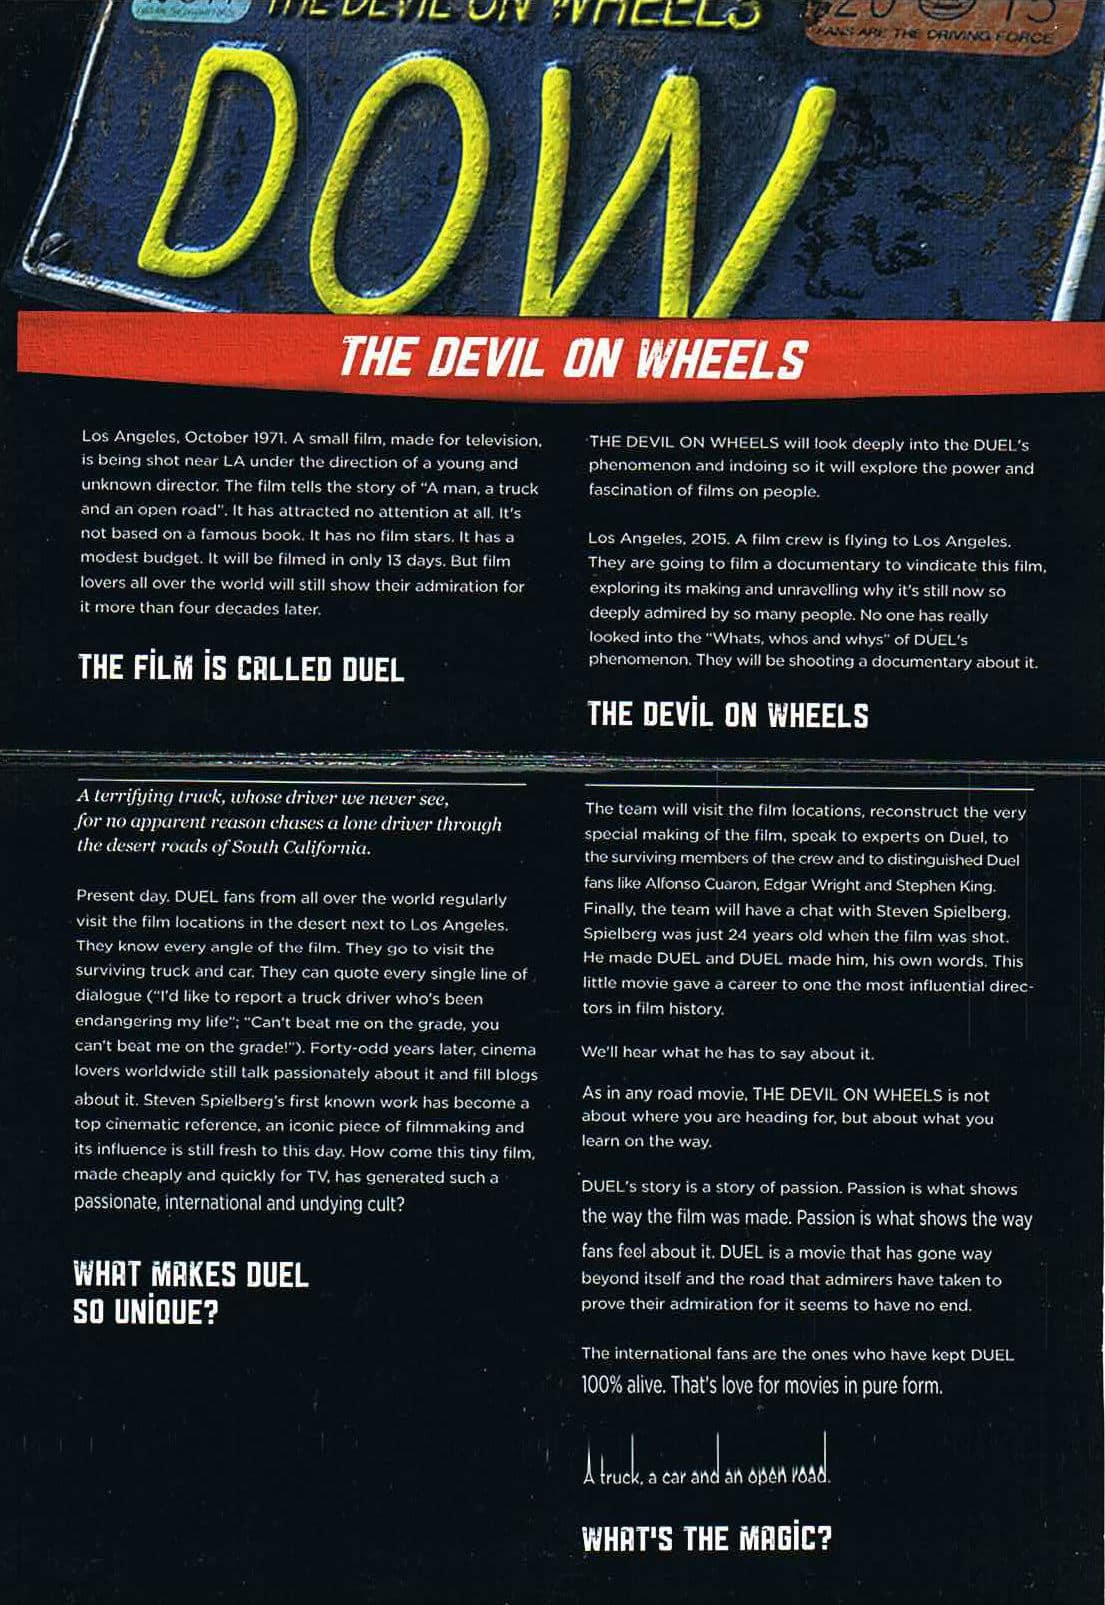 The Devil On Wheels Poster